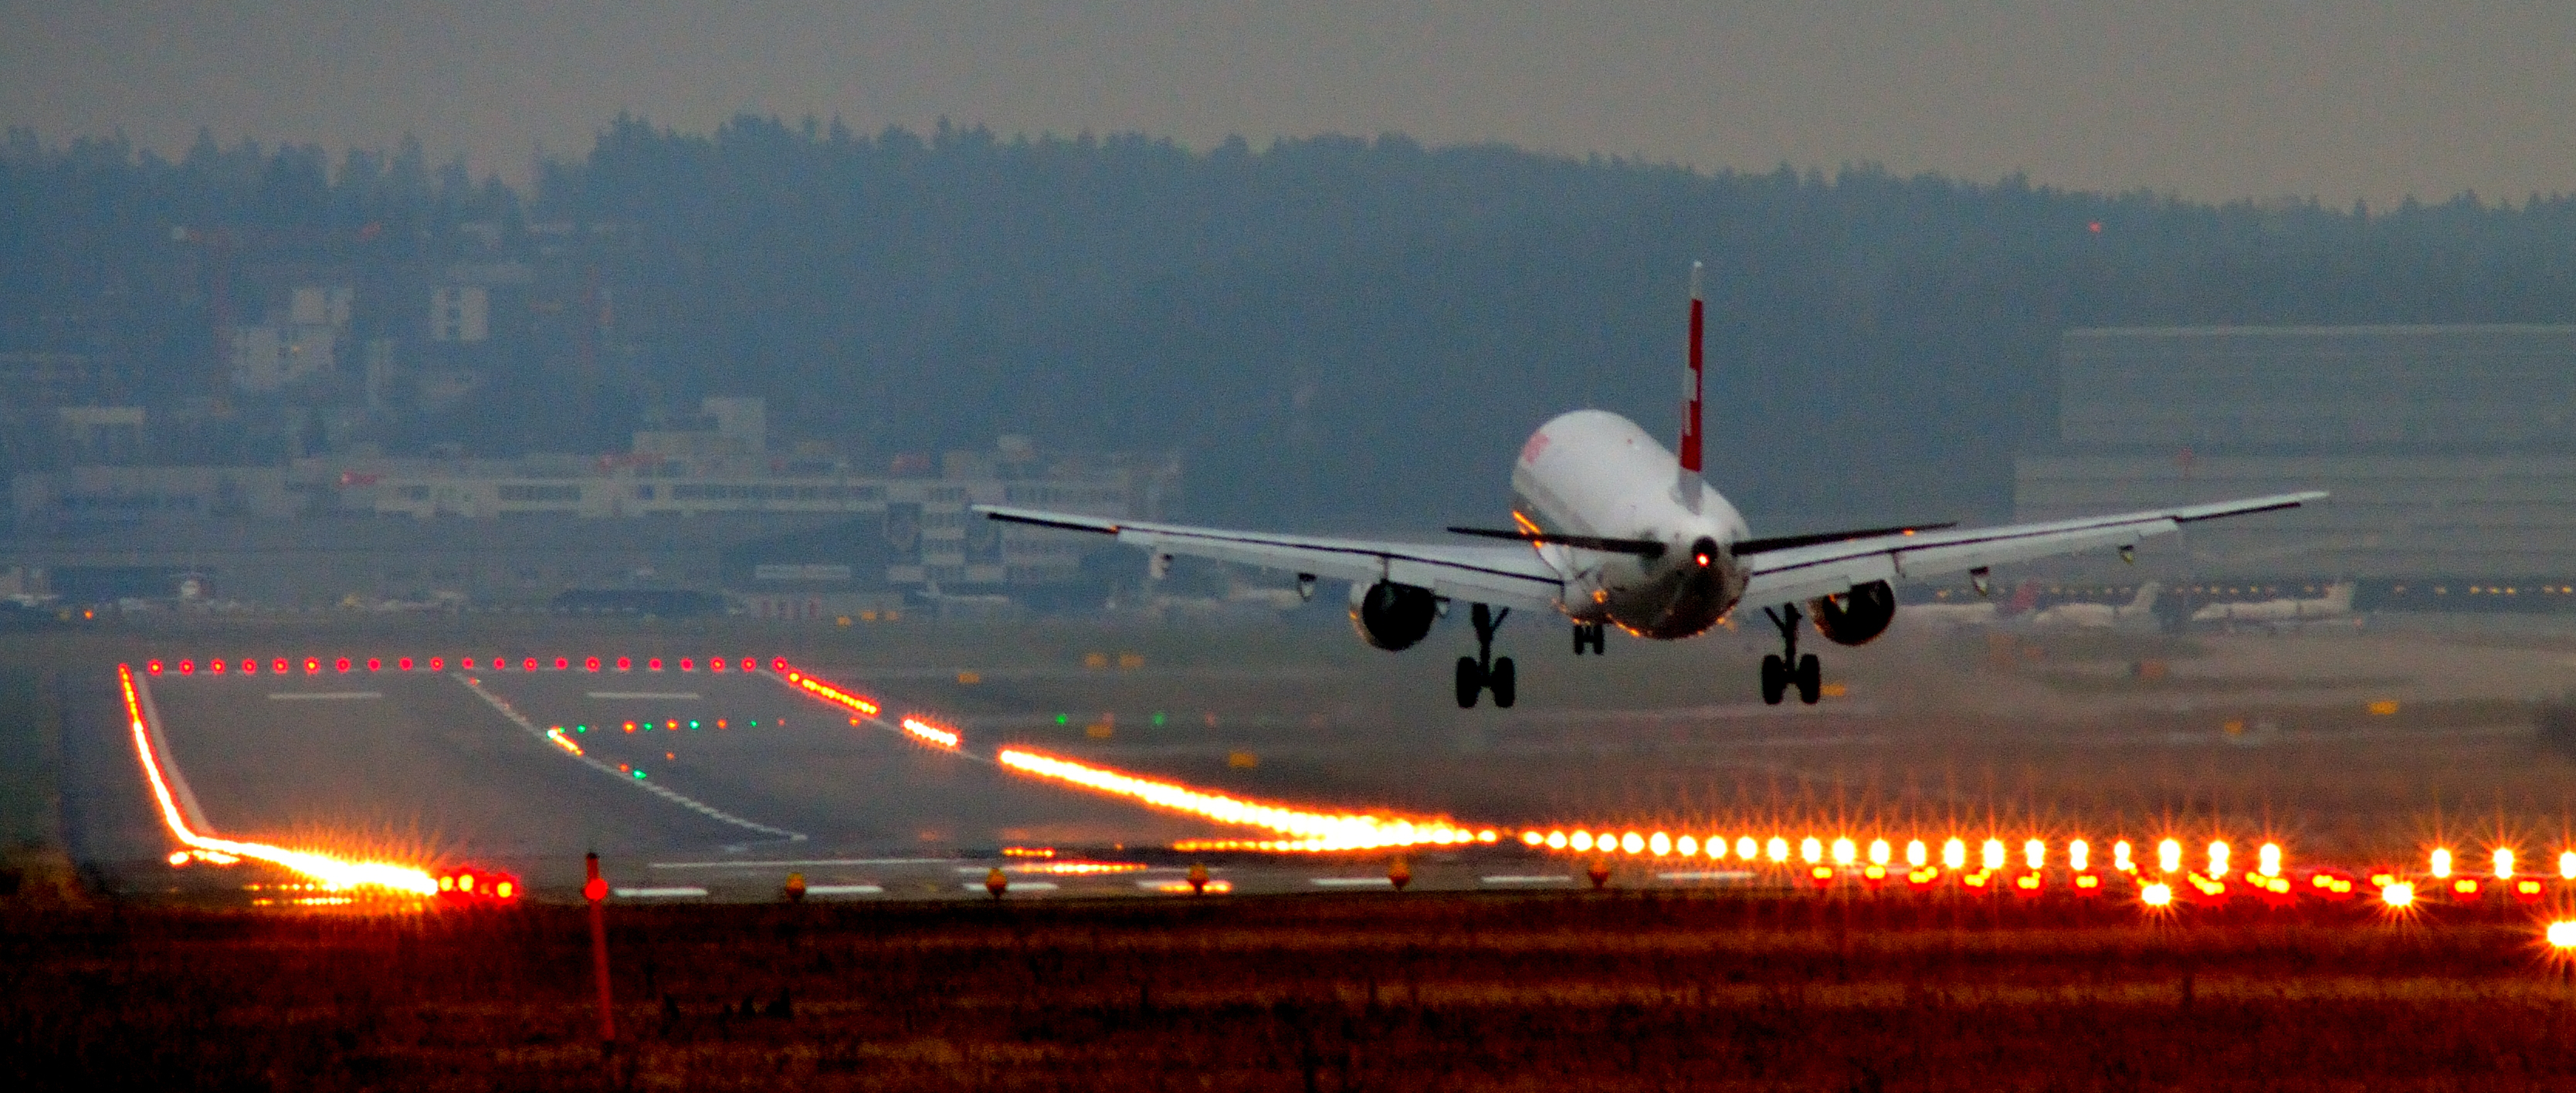 [Image: Landing_at_Zurich_International_Airport.jpg]